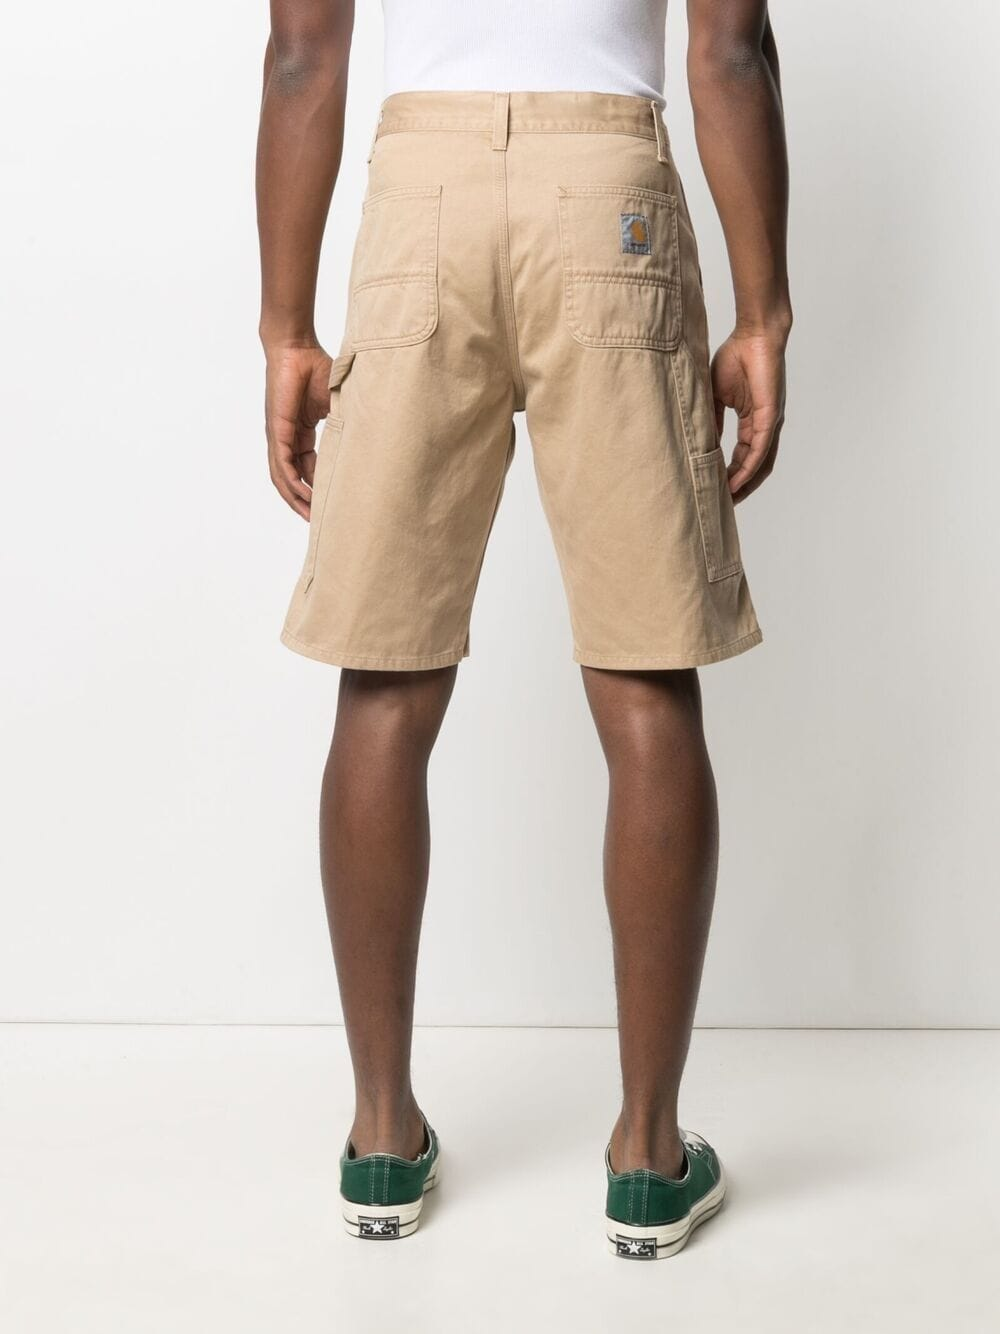 Carhartt ruck single knee shorts man beige CARHARTT | Shorts | I02489207E.06